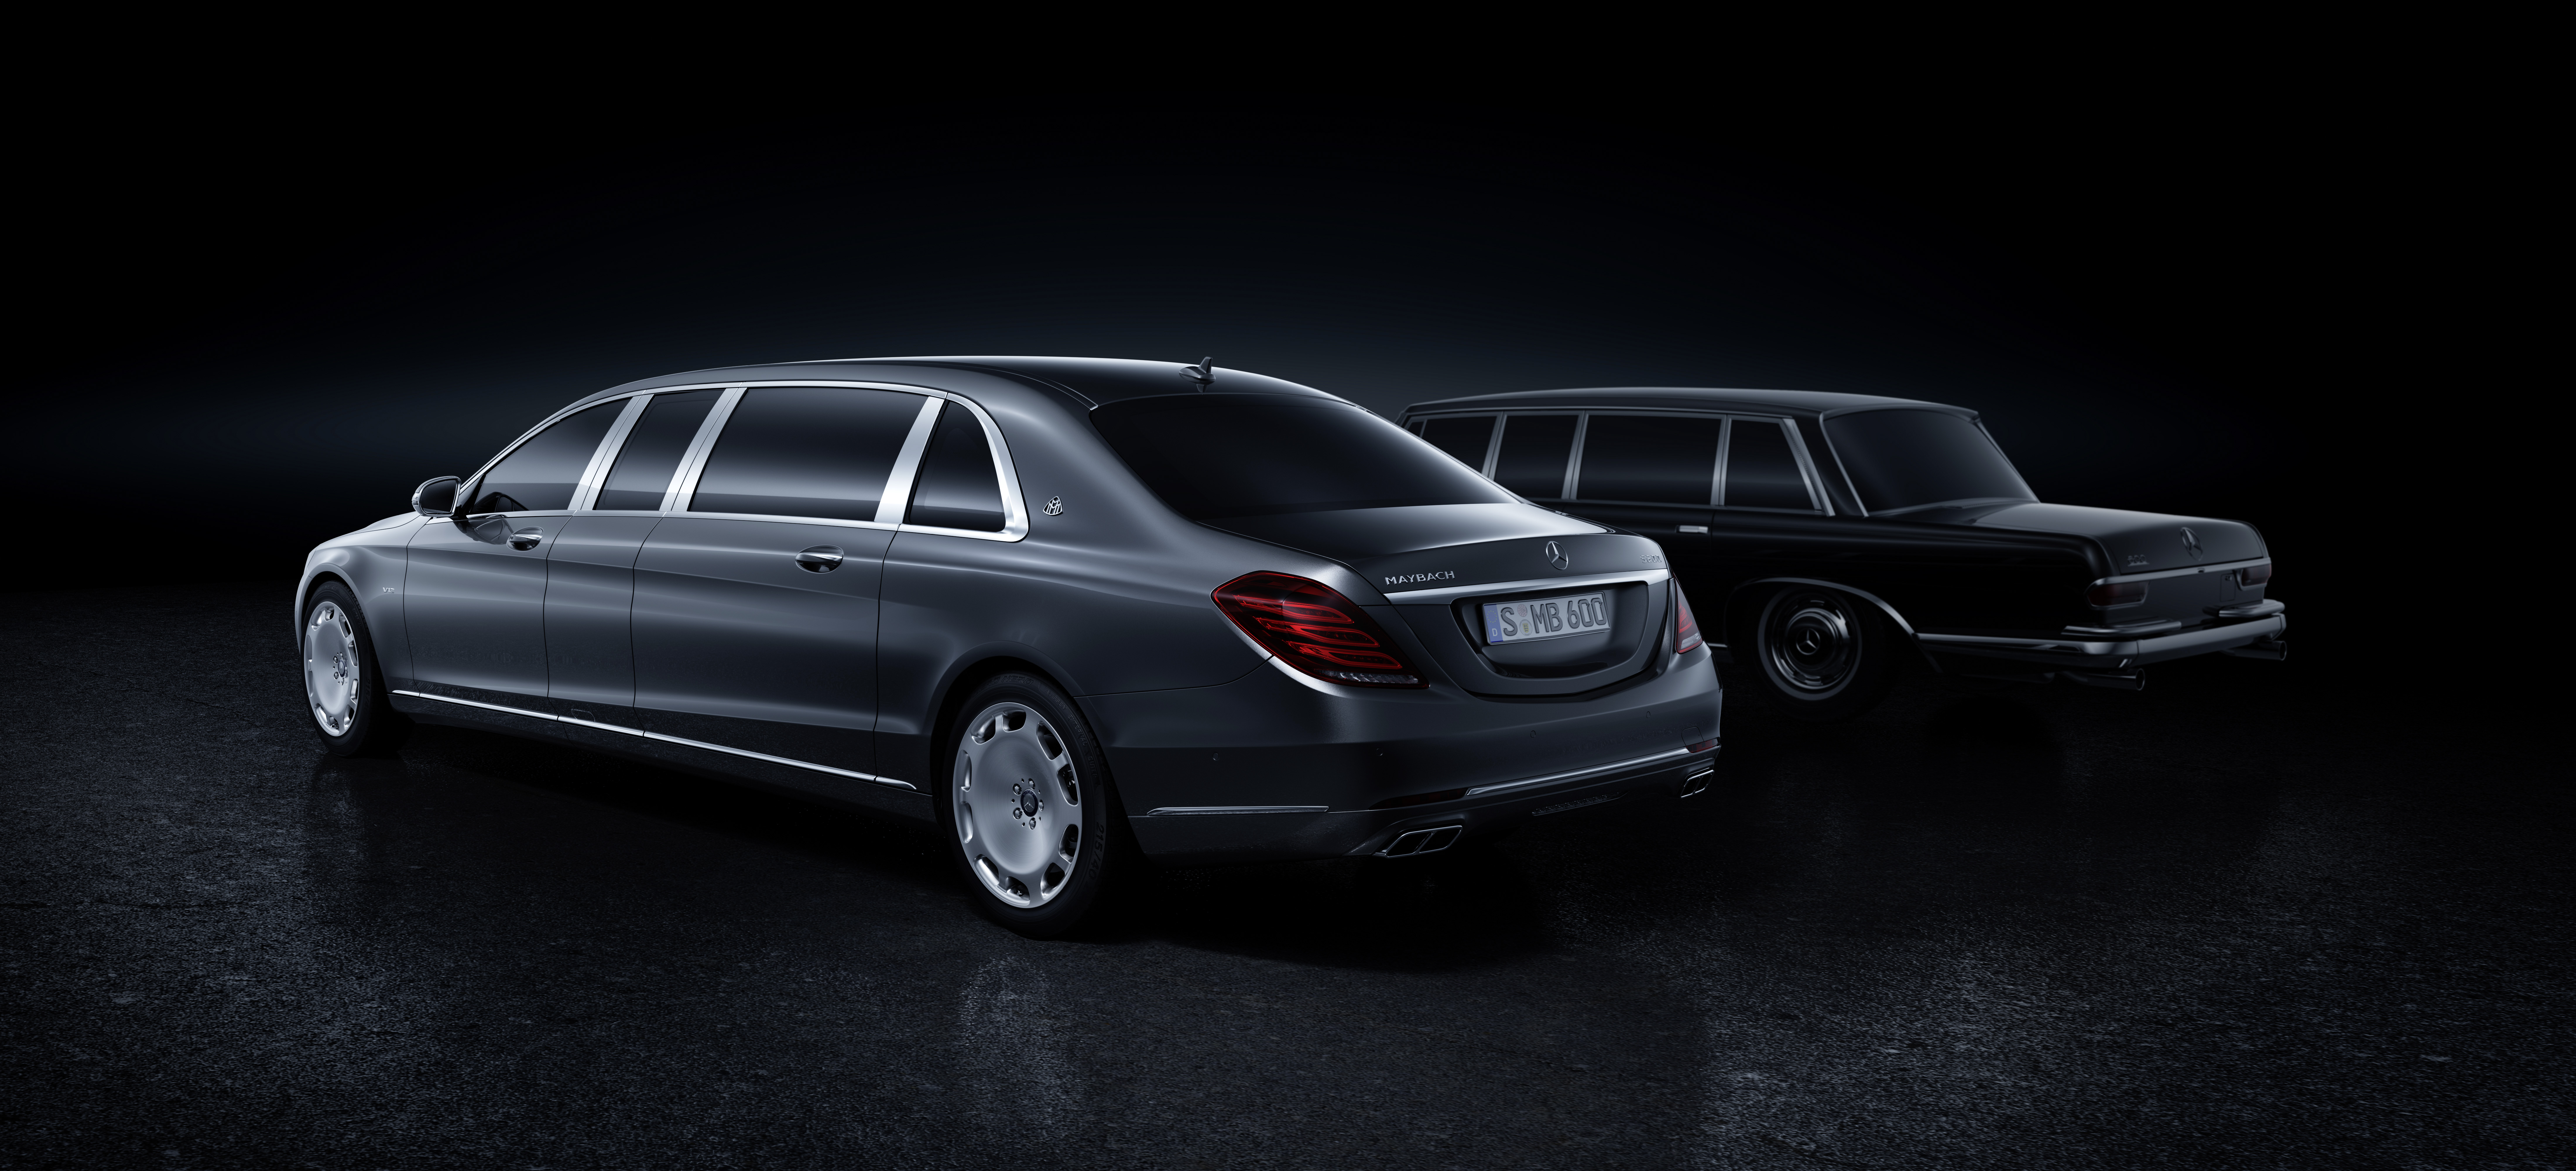 salon de gen ve 2015 mercedes maybach pullman h tel. Black Bedroom Furniture Sets. Home Design Ideas